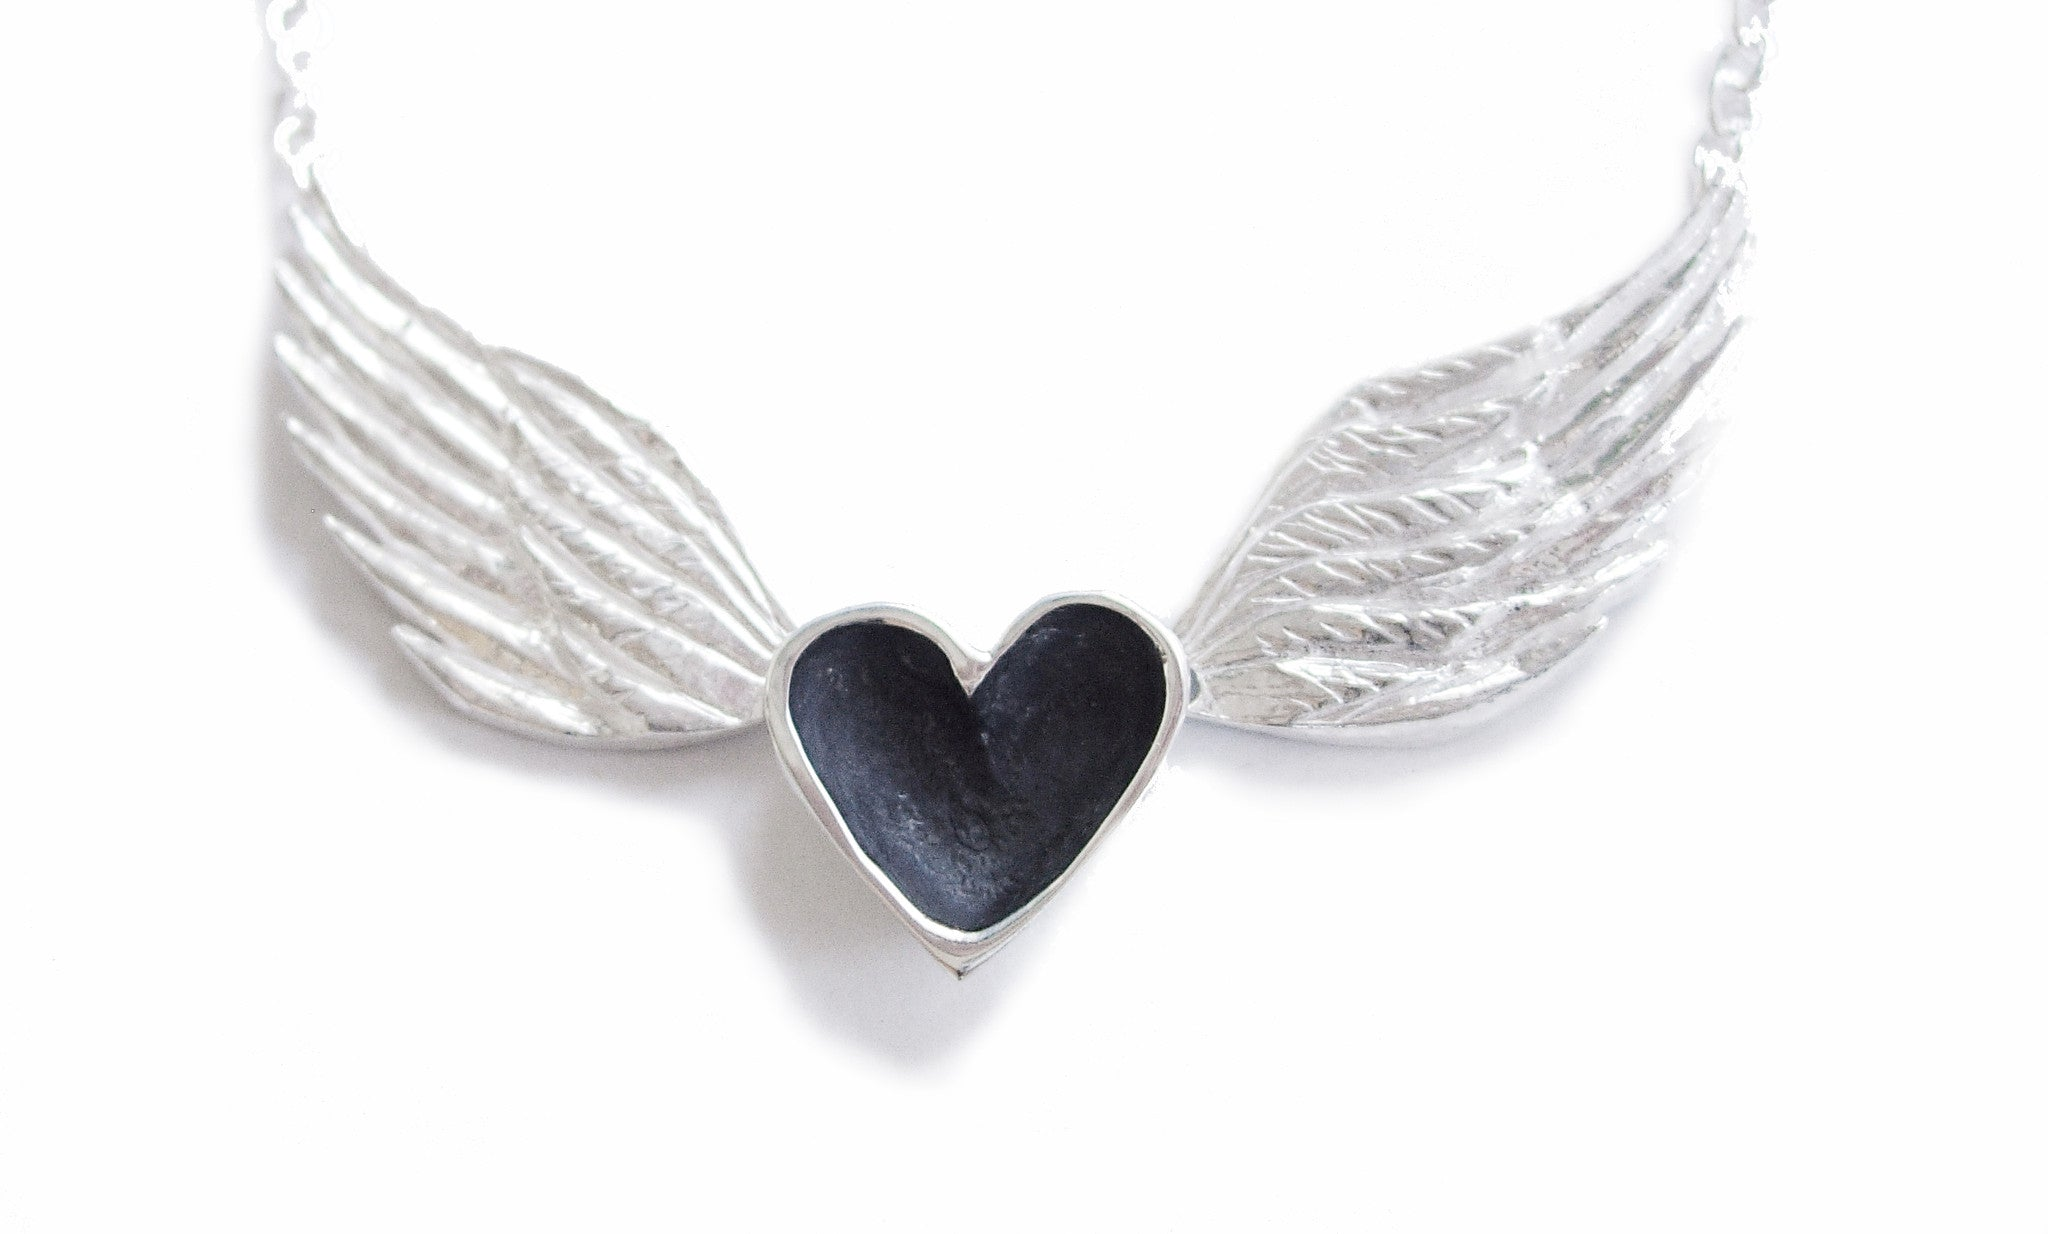 A handmade necklace featuring a silver heart with black patina centered between sterling silver wings on a sterling silver chain.